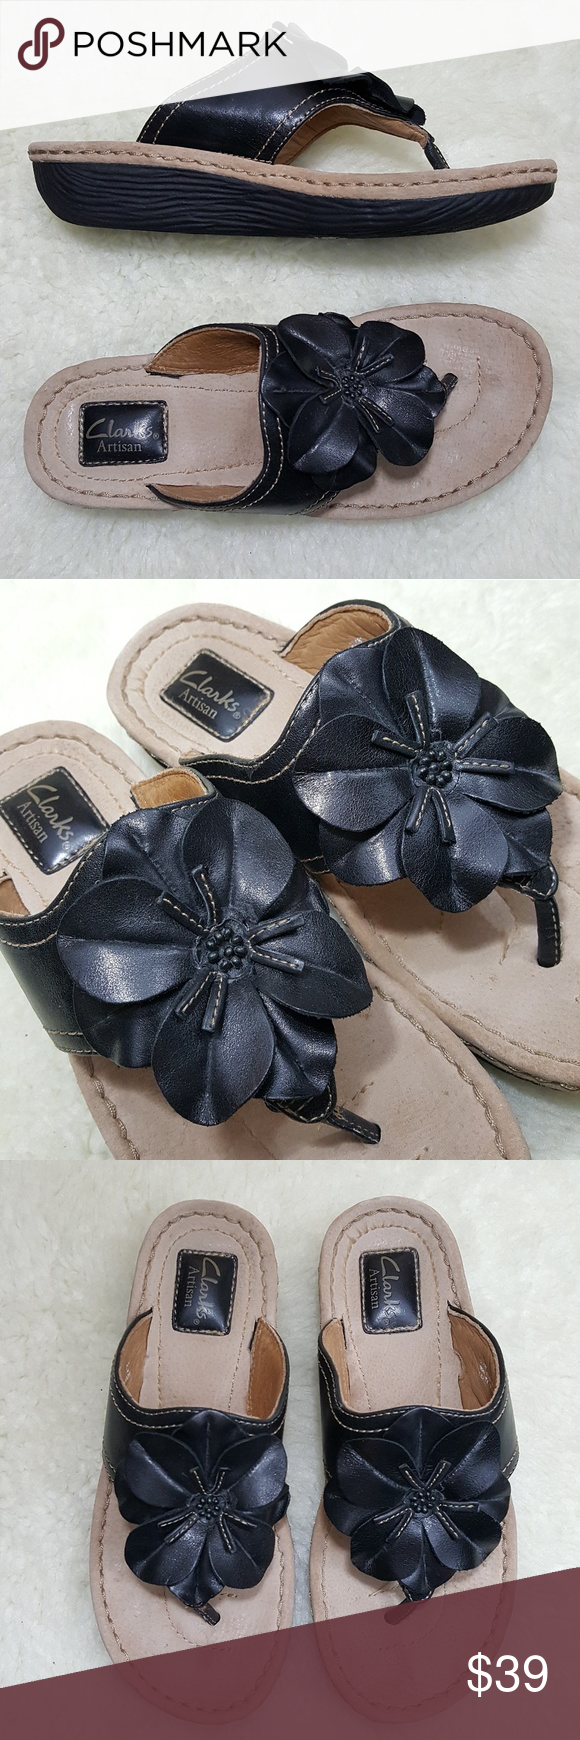 45018751bb5038 Clarks Artisan Leather Flower Detail Thong Sandal Pre-Owned. Please see all  photos for